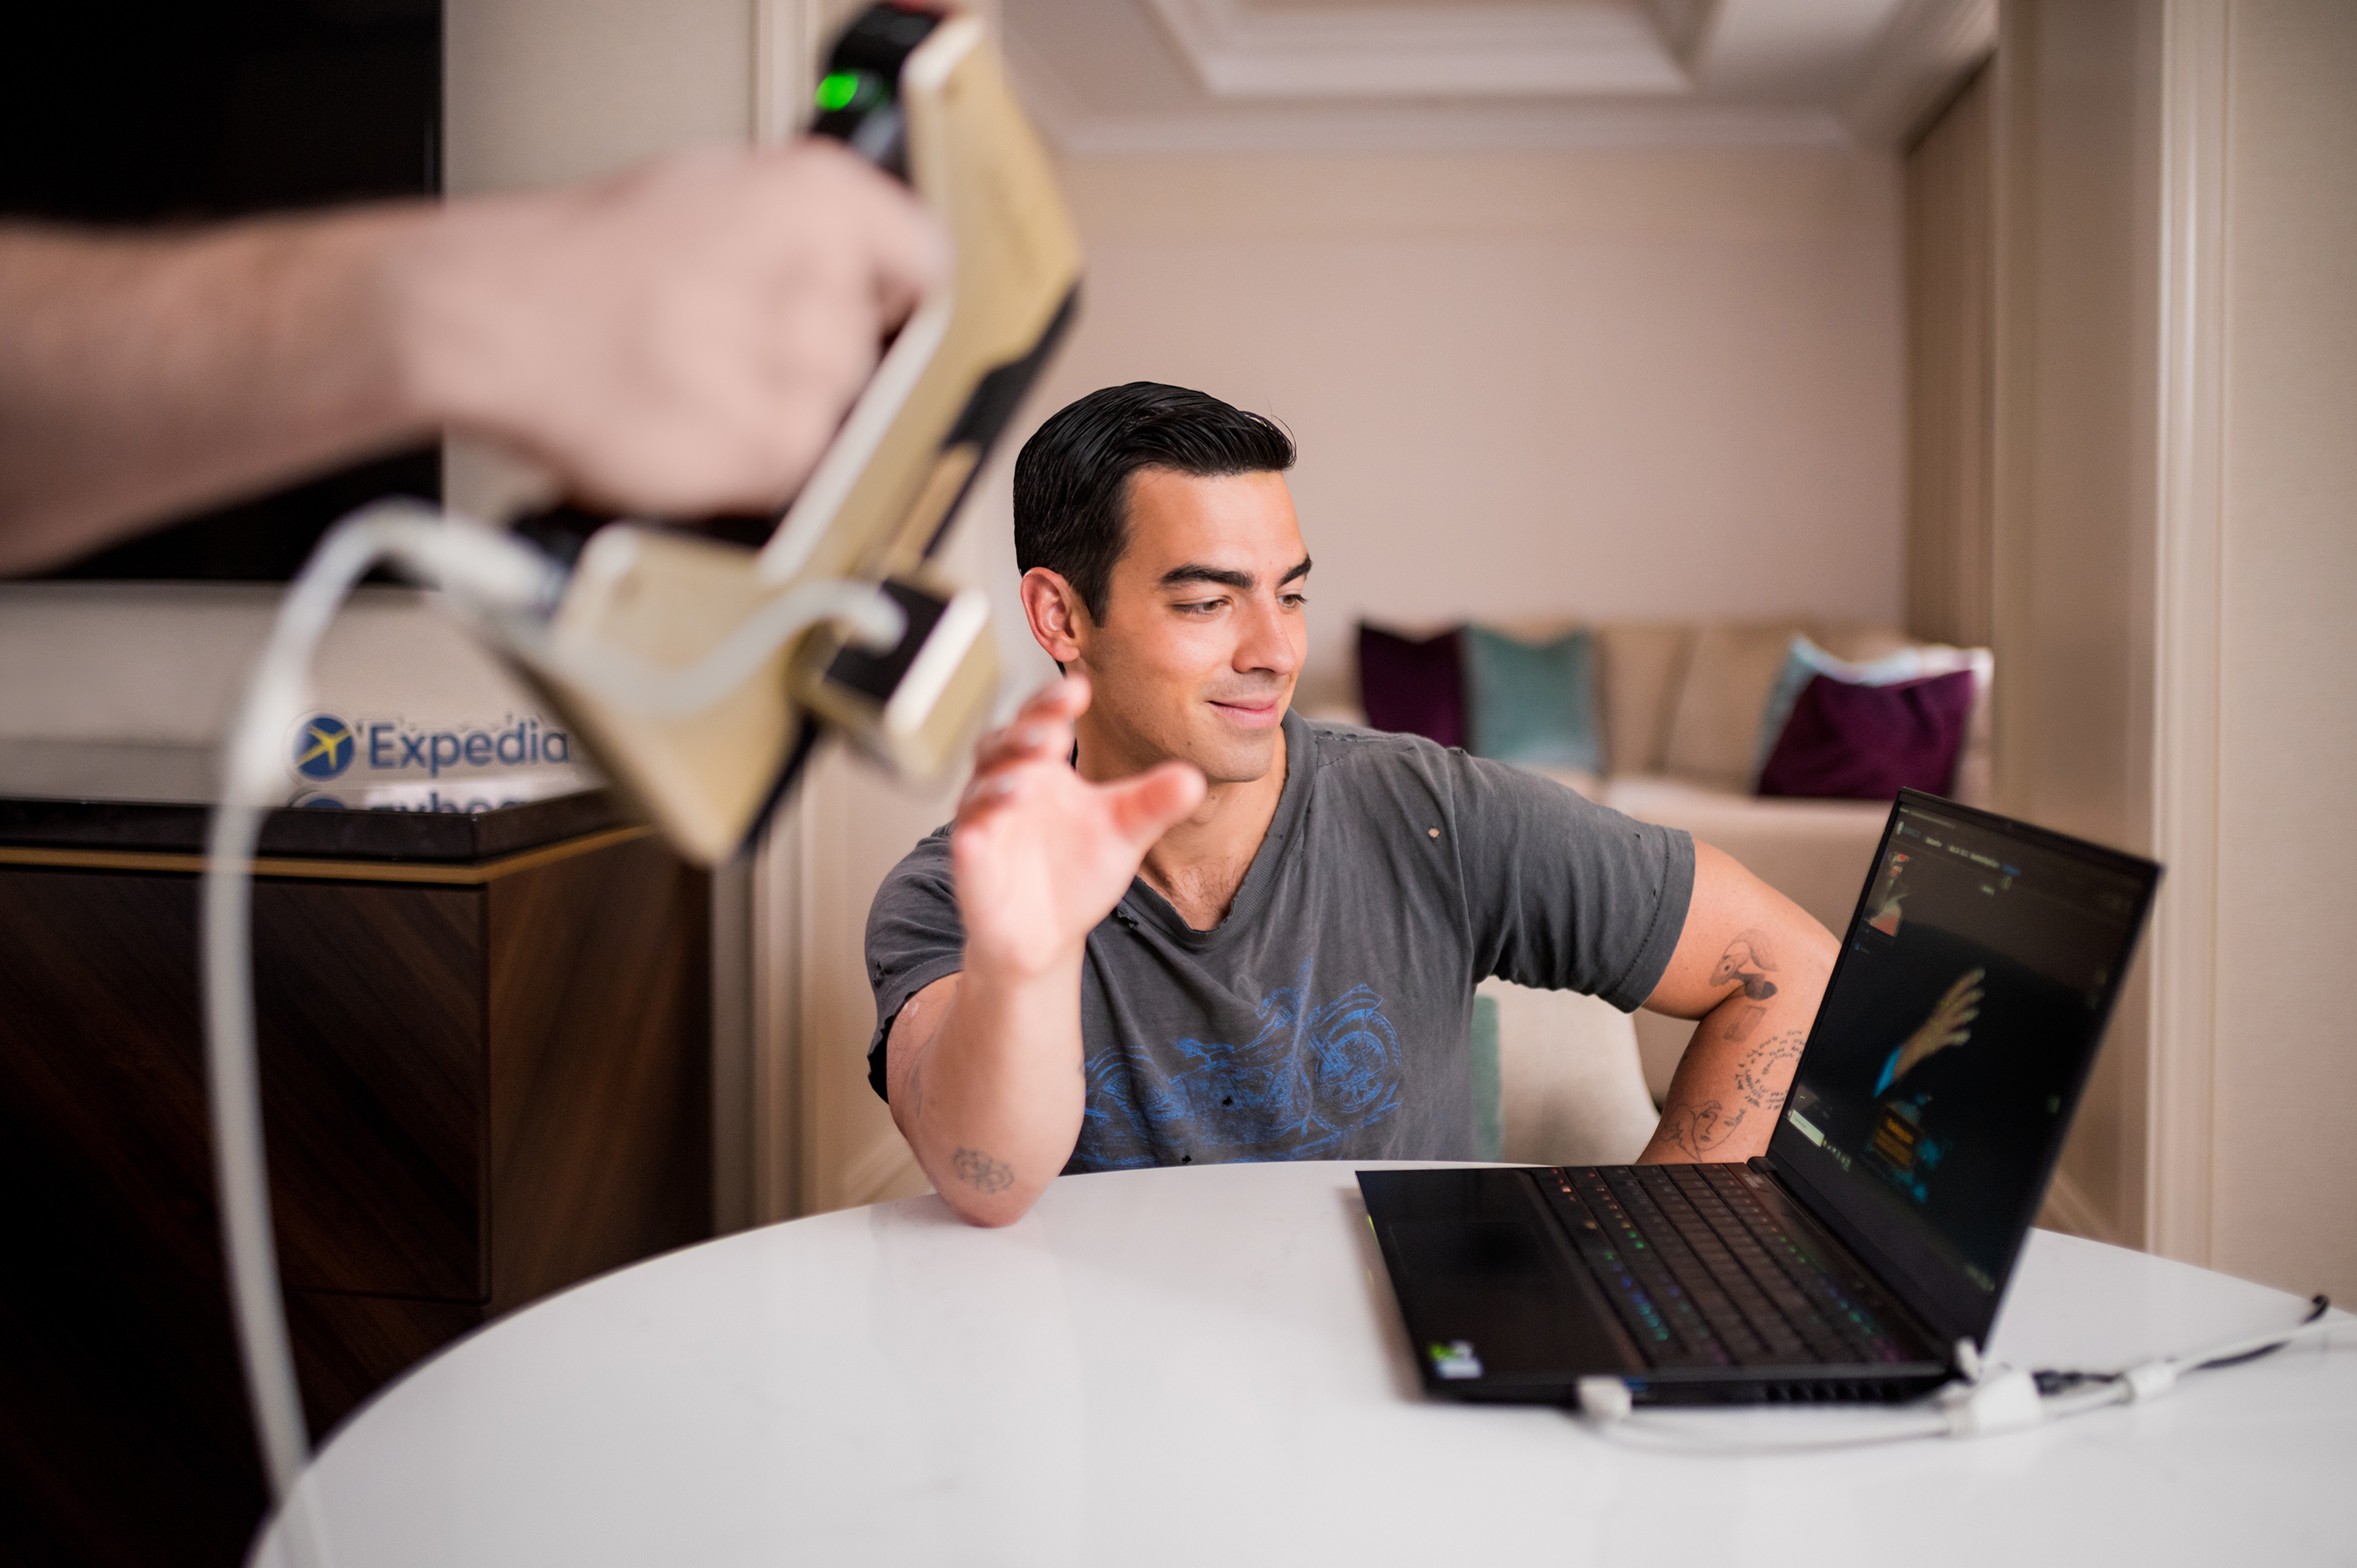 How it's made - A 3D scan of Joe Jonas's right hand is captured to ensure an exact replica for the Expedia Helping Hand